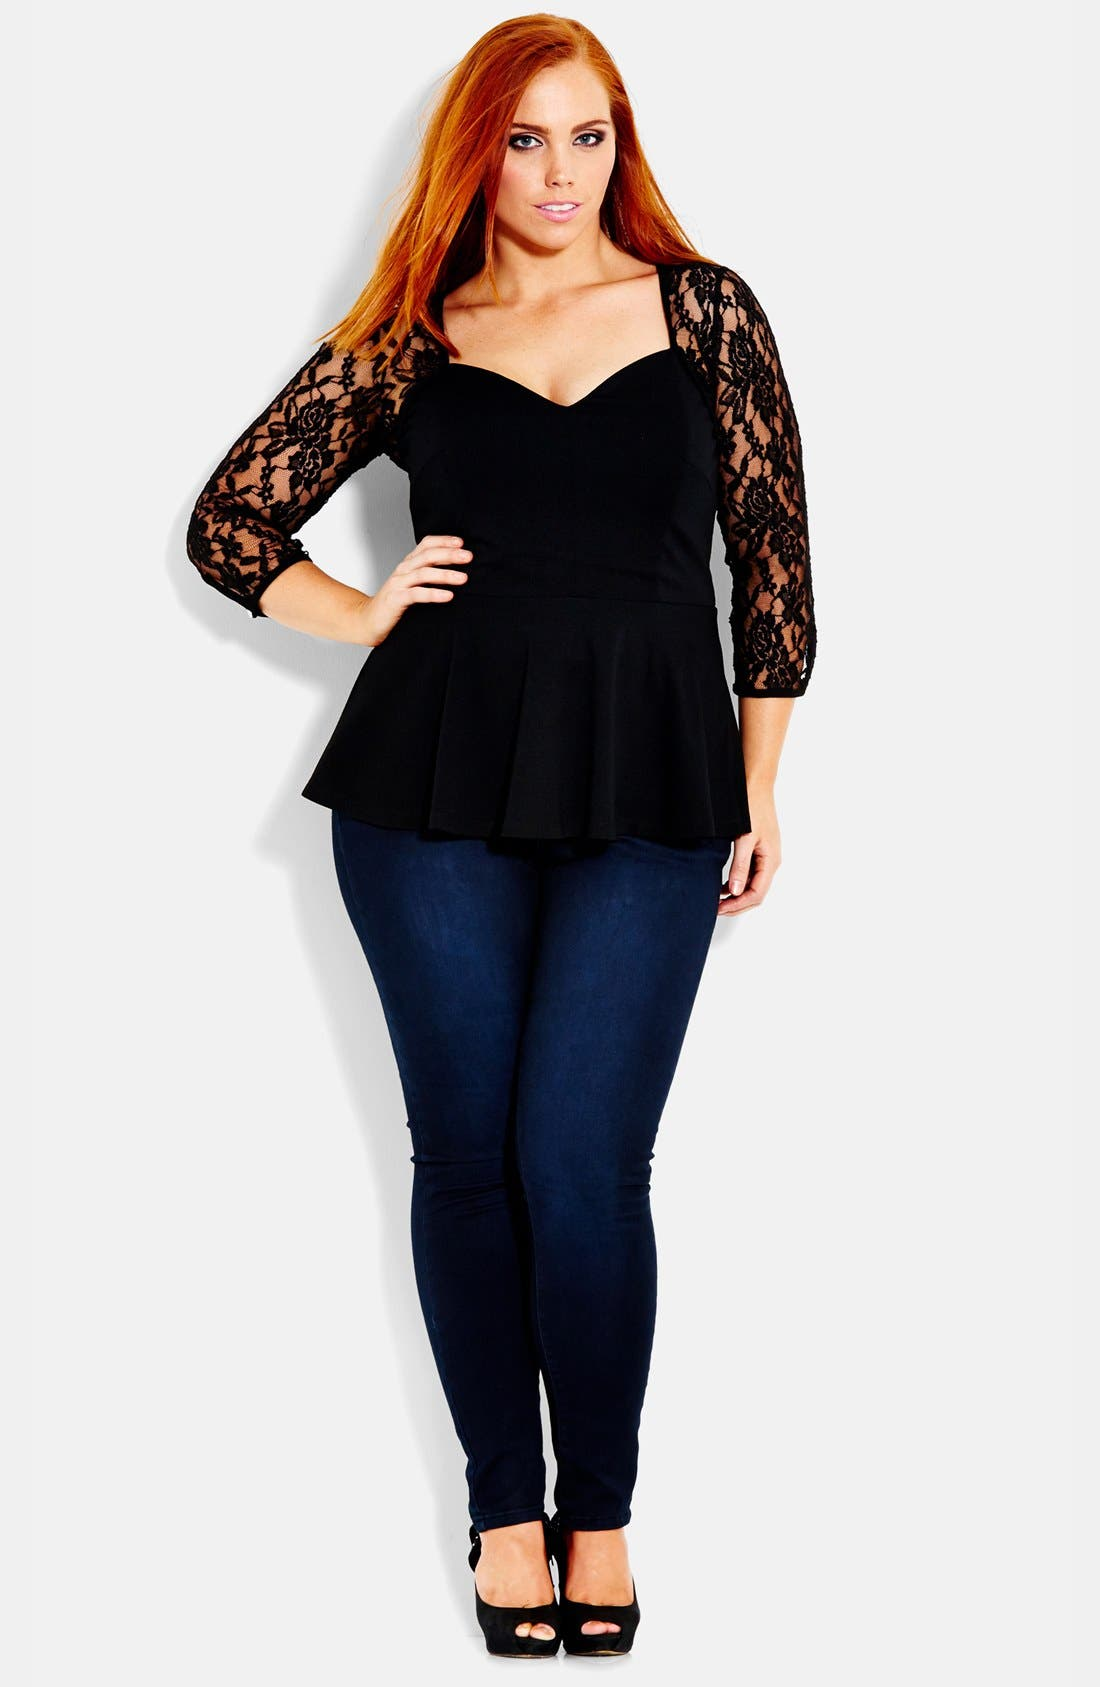 Alternate Image 1 Selected - City Chic Lace Bolero Corset Top (Plus Size)